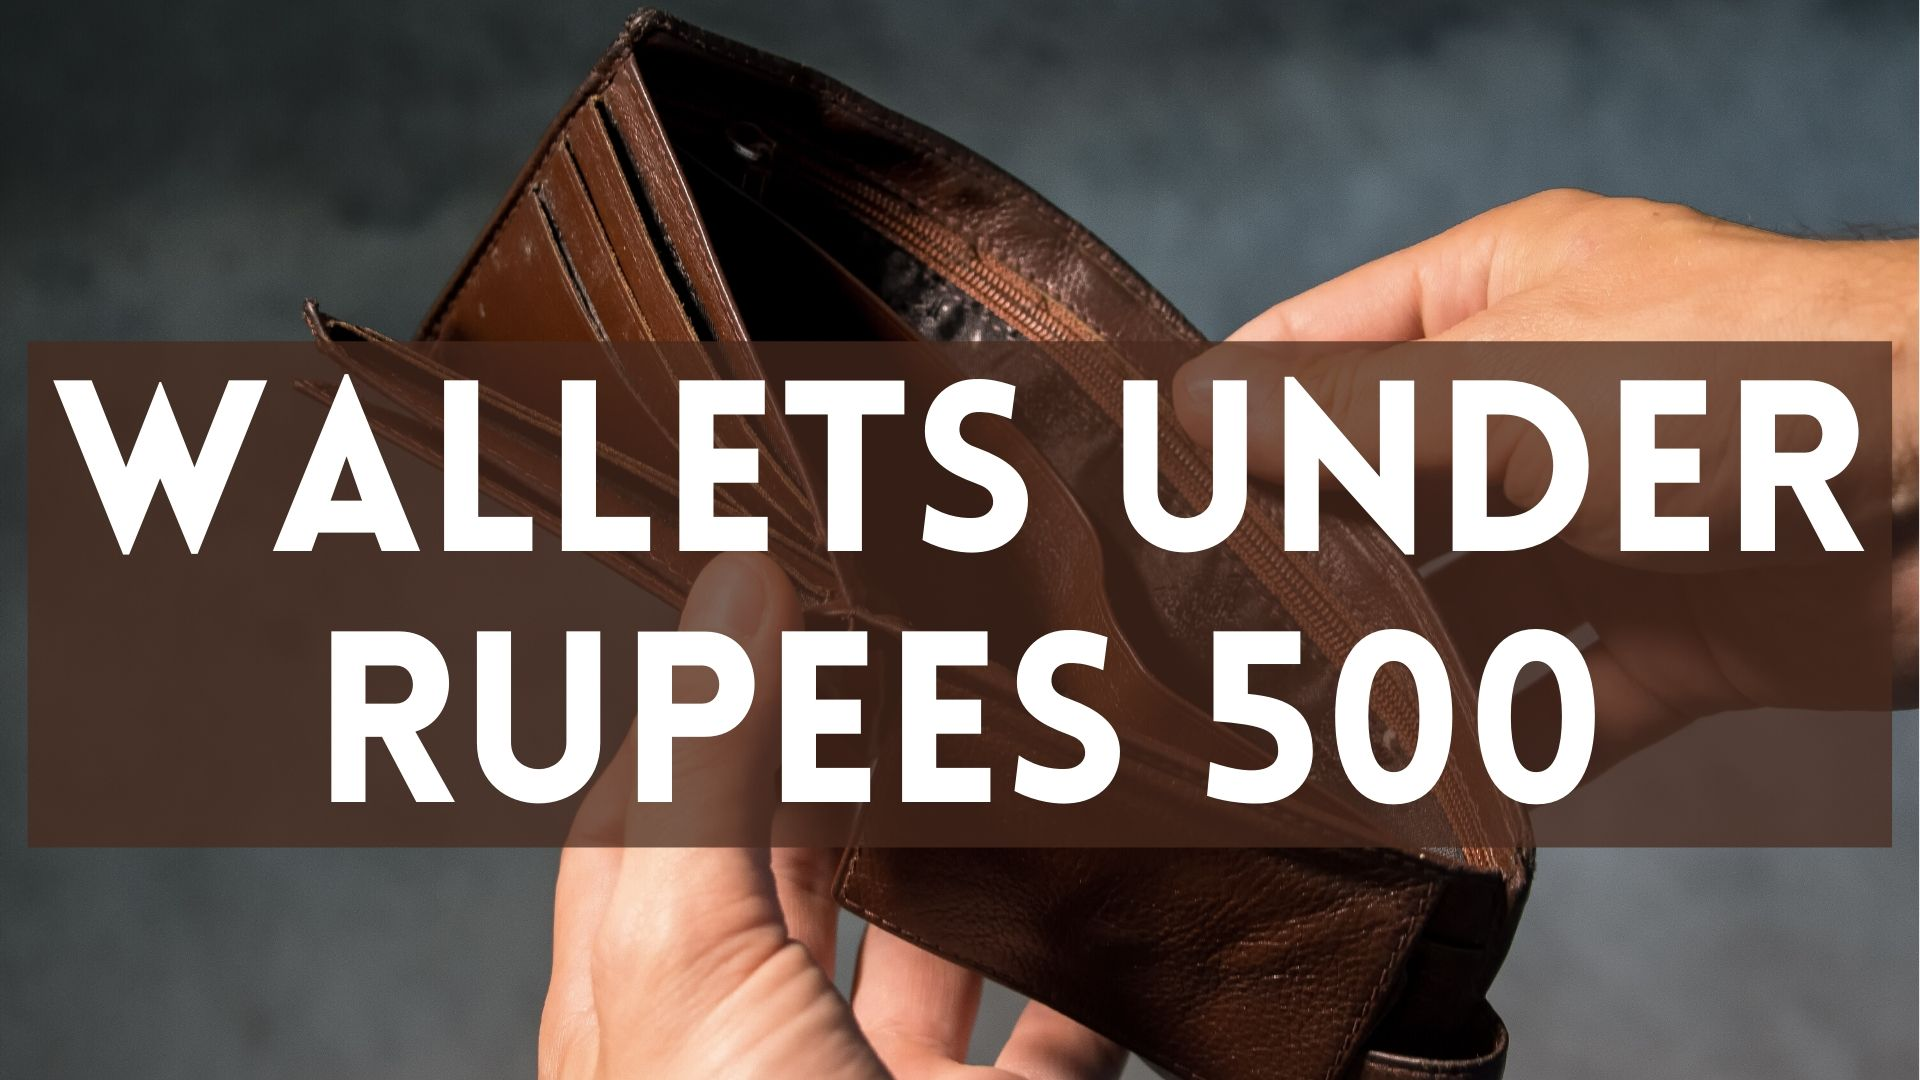 wallets under rupees 500